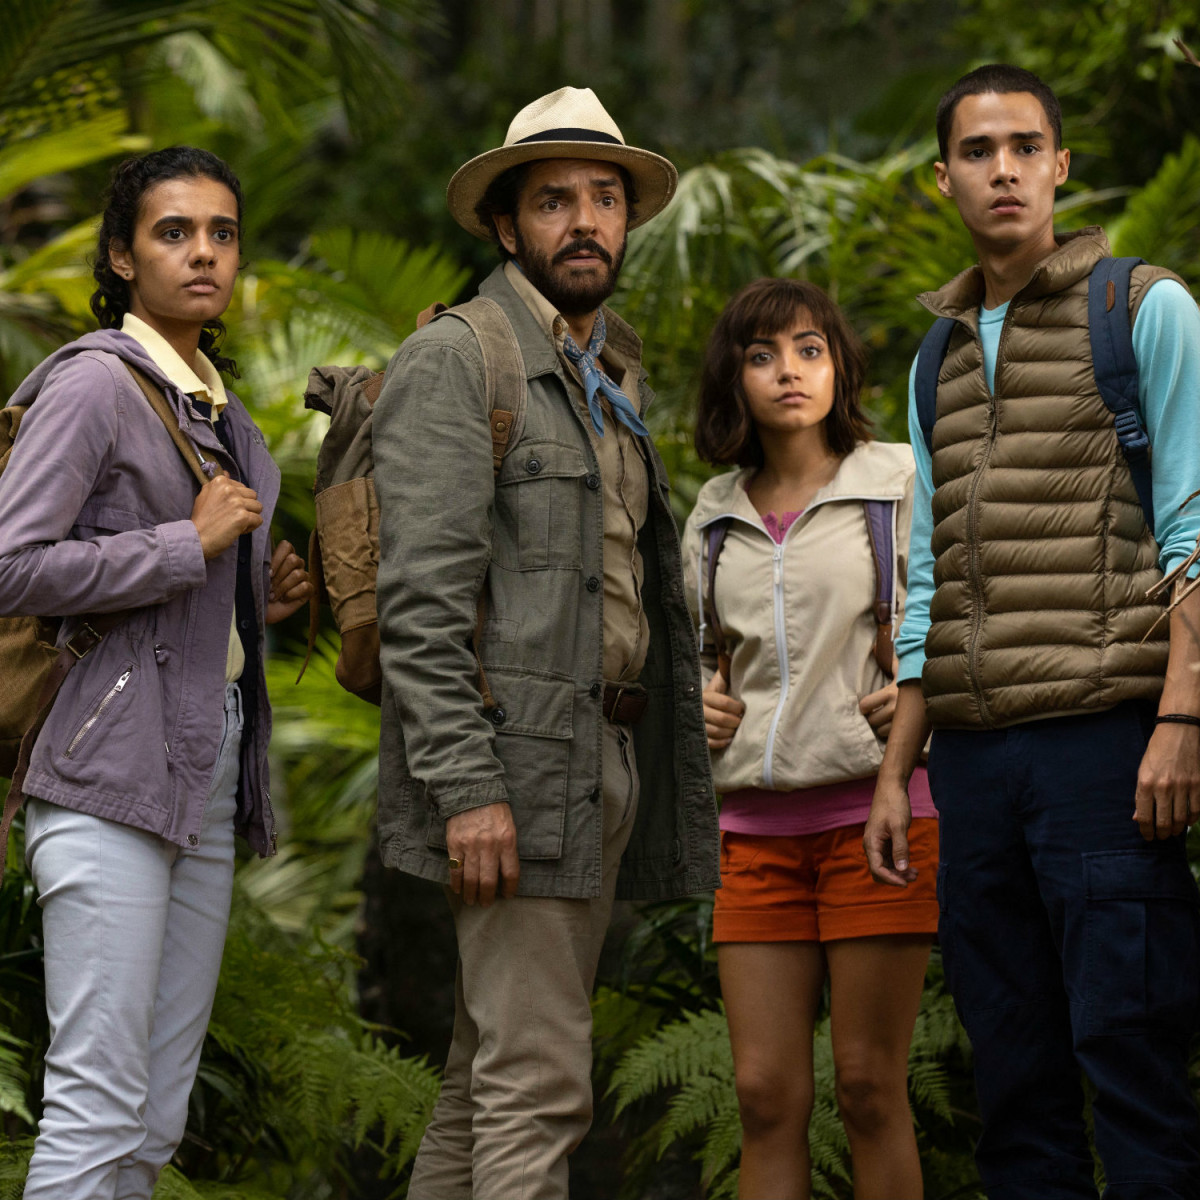 Madeleine Madden, Eugenio Derbez, Isabela Moner, and Jeff Wahlberg in Dora and the Lost City of Gold